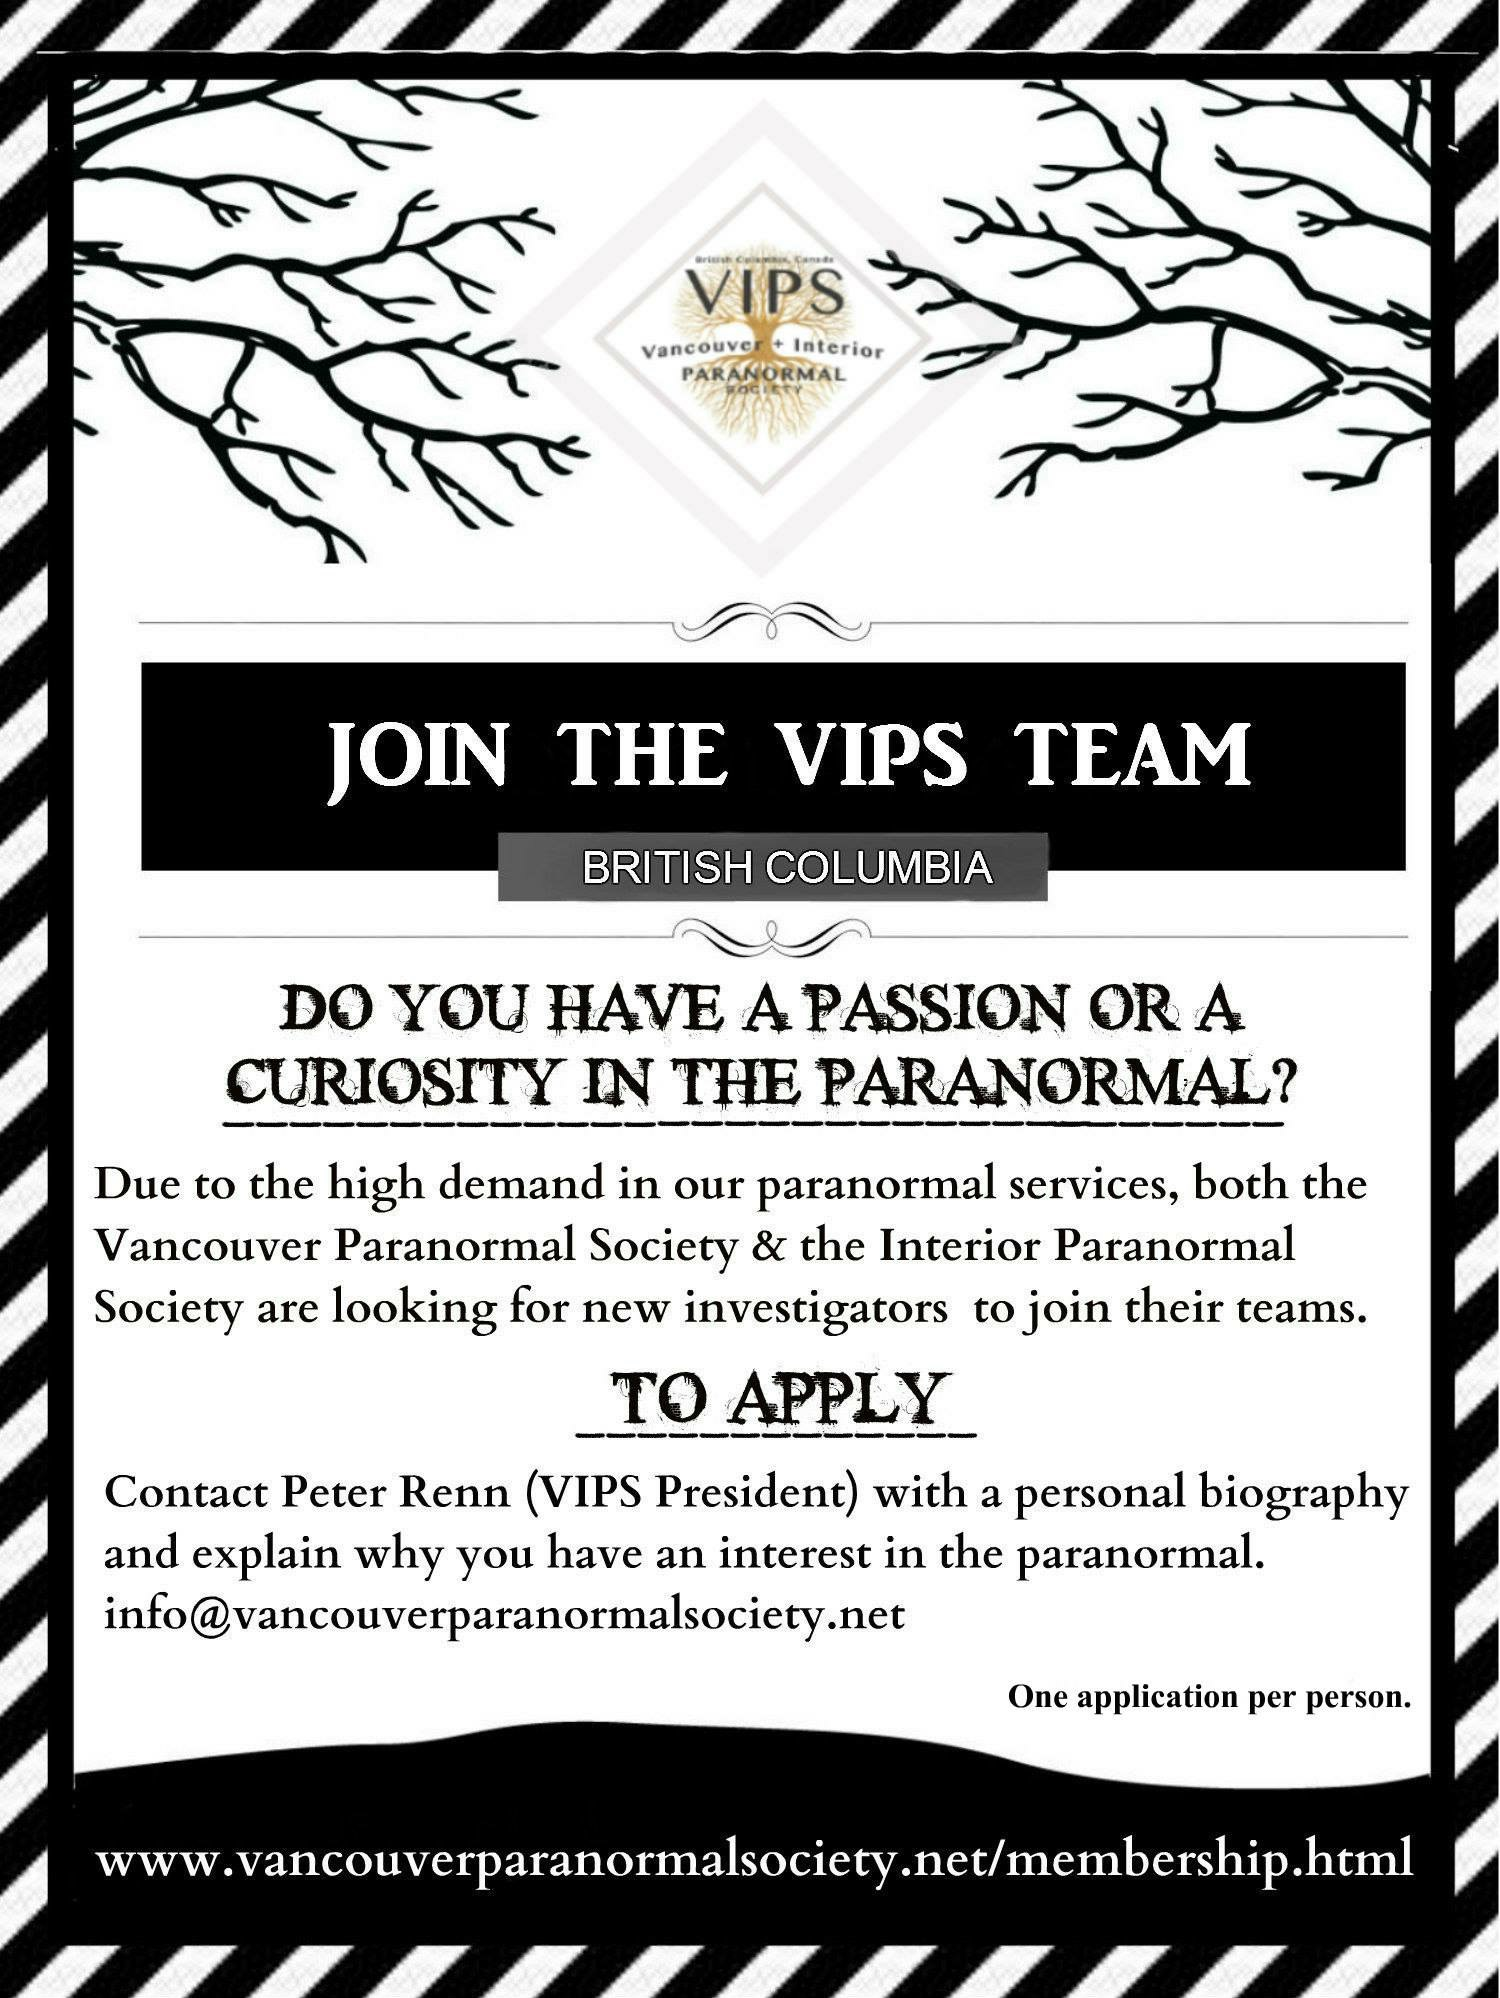 We are currently accepting applications for new investigators to join the team if you have a passion or curiosity in the paranormal and have ever